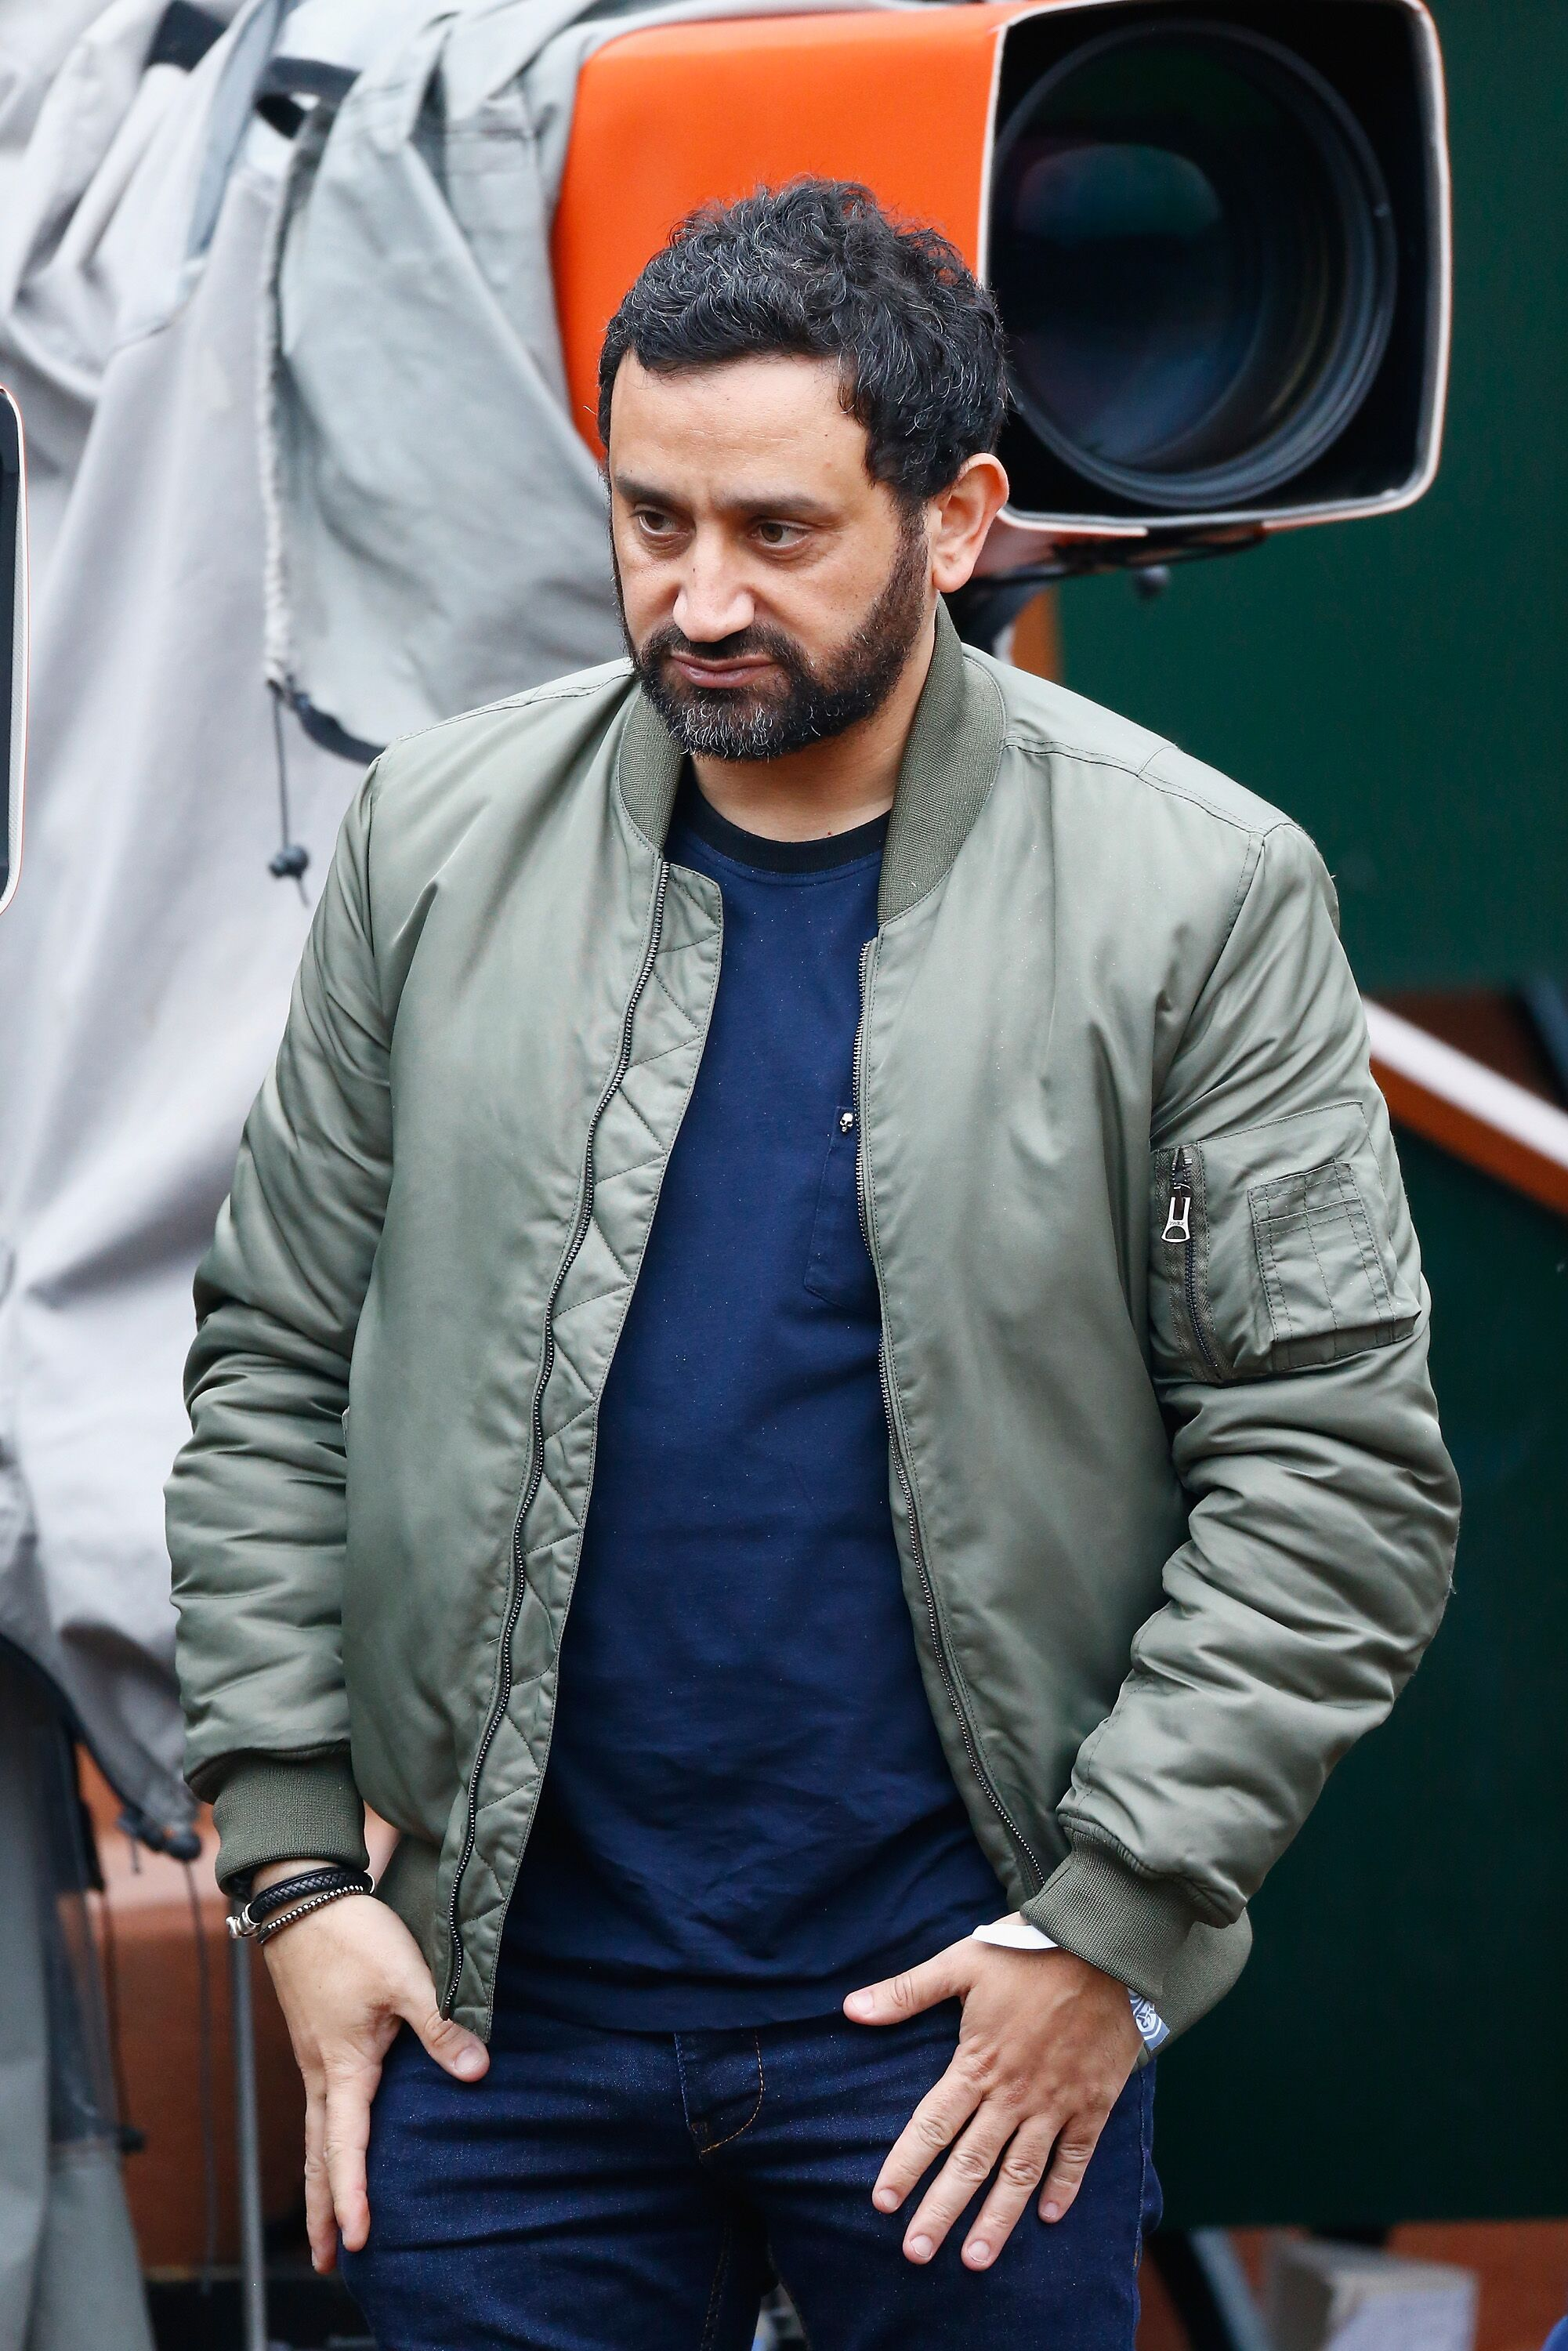 Cyril Hanouna assiste à l'Open de Tennis de France Jour 8 à Roland Garros le 29 mai 2016 à Paris, France. | Photo : Getty